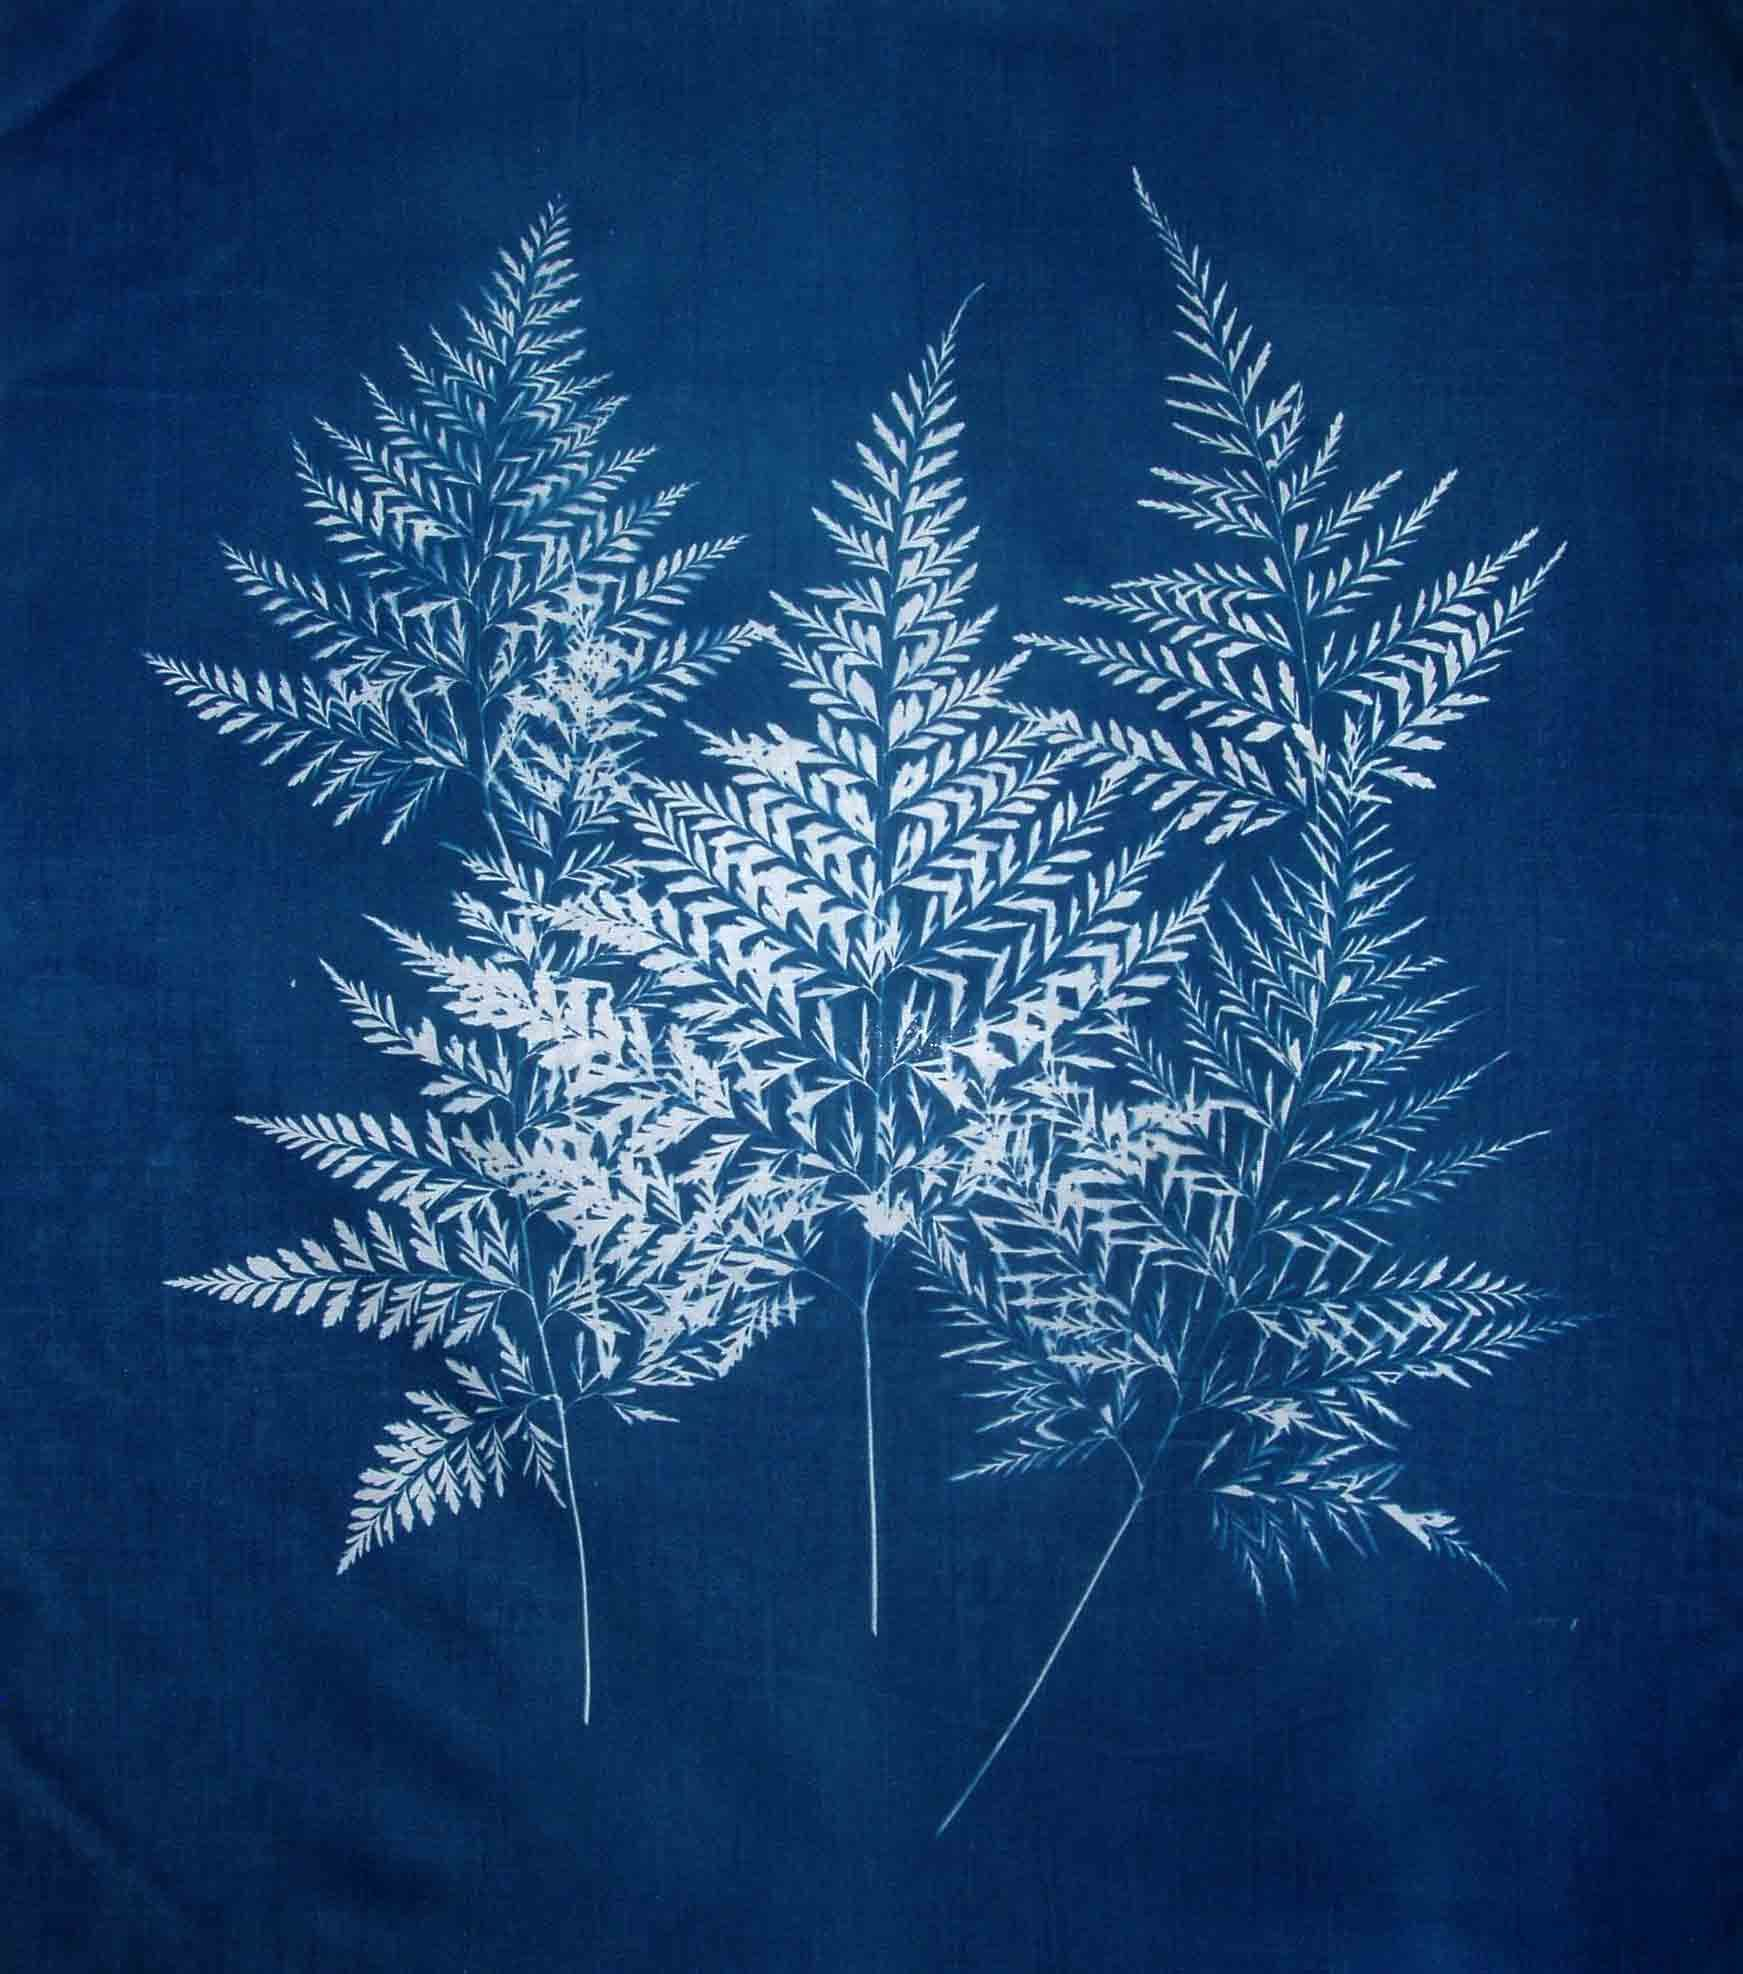 Do you know anything about cyanotypes?